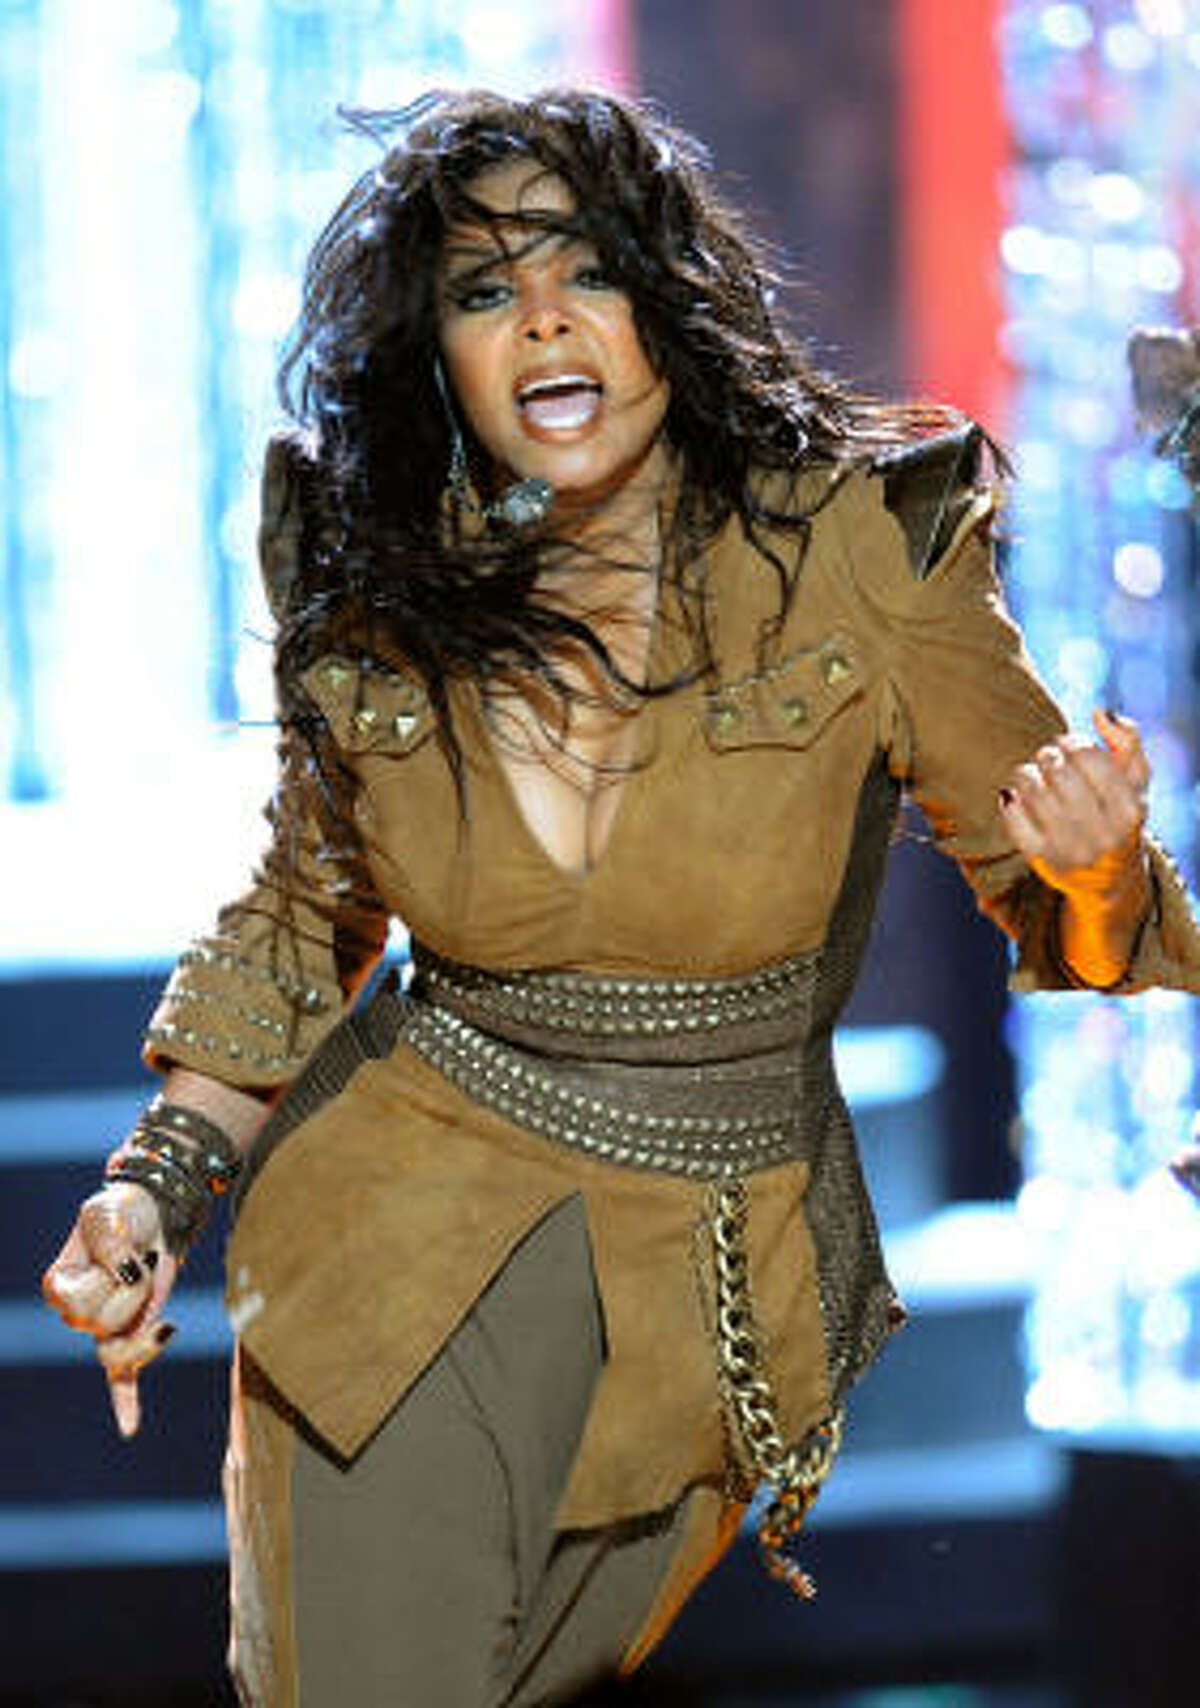 Janet Jackson performs at the American Music Awards. See who else was there.